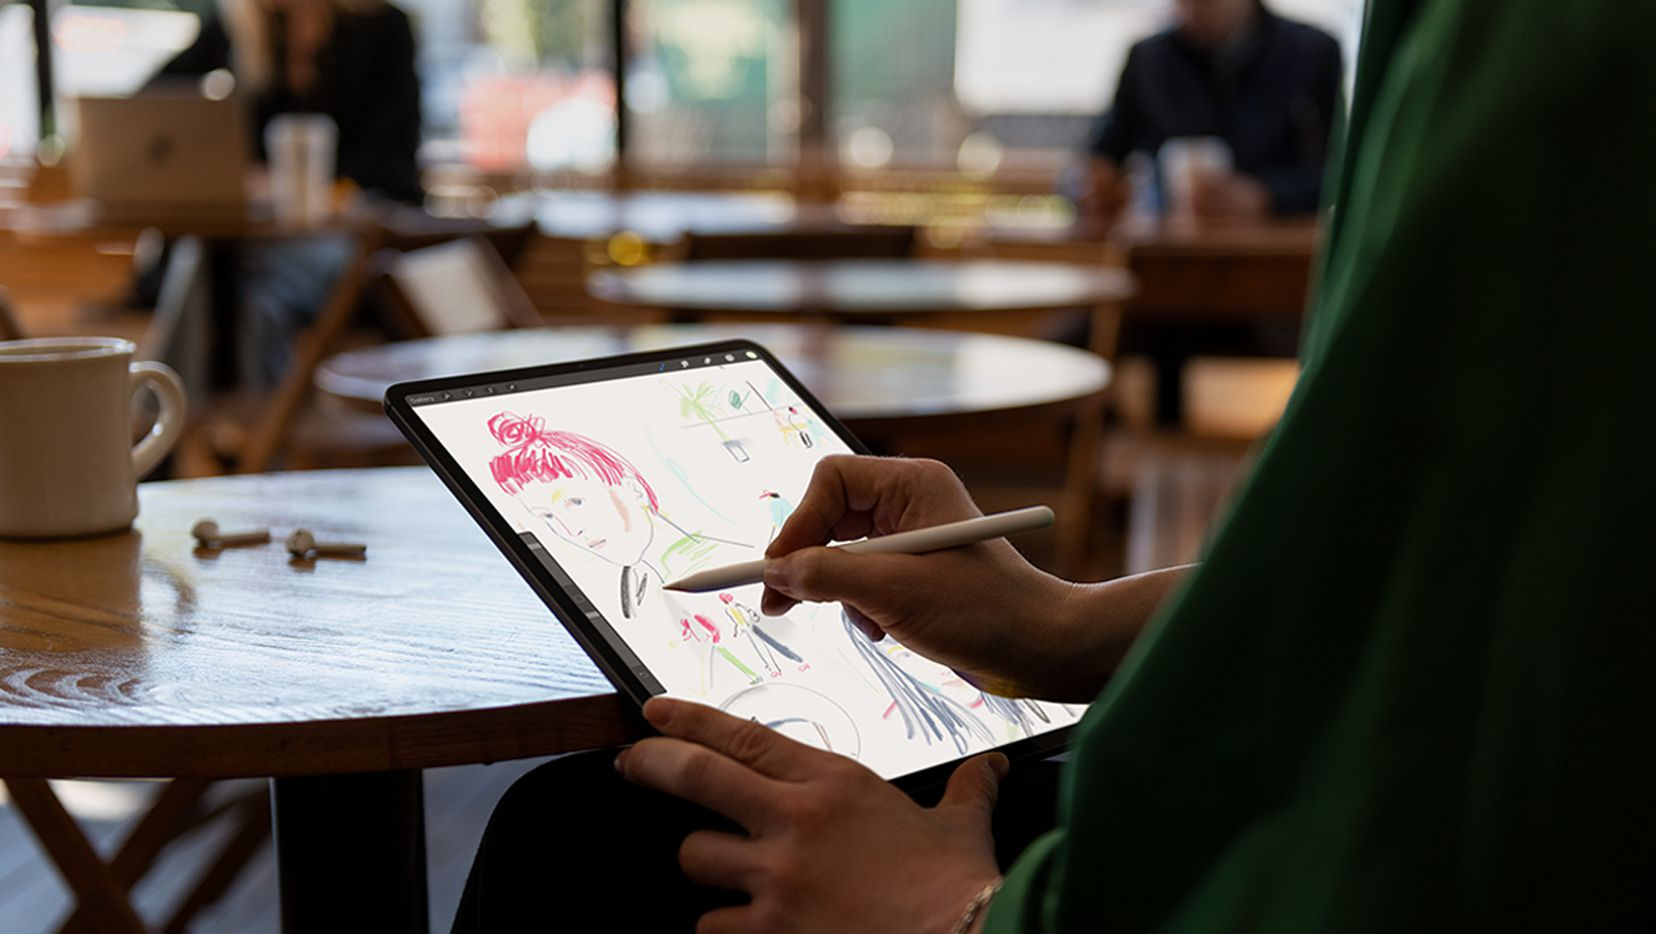 The new iPad Pro has a new optional Pencil